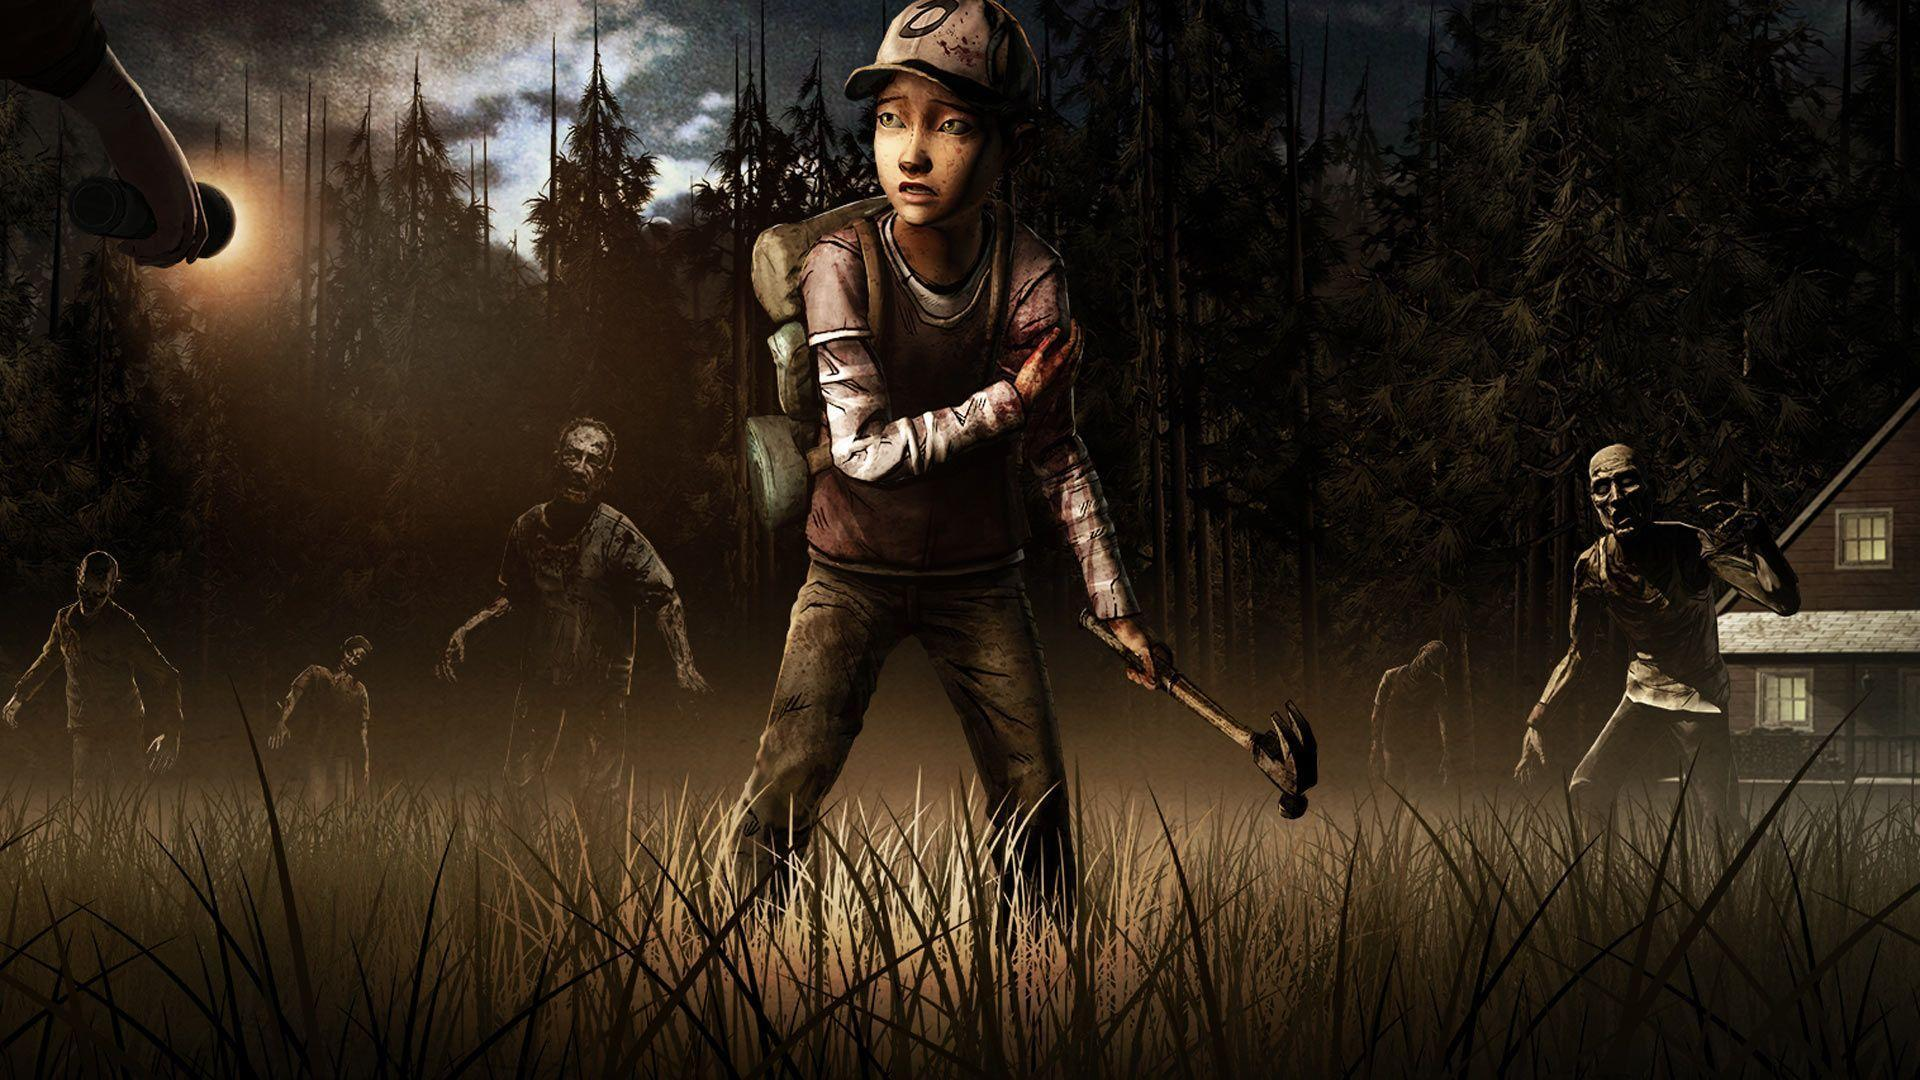 Image For > The Walking Dead Season 2 Game Wallpapers